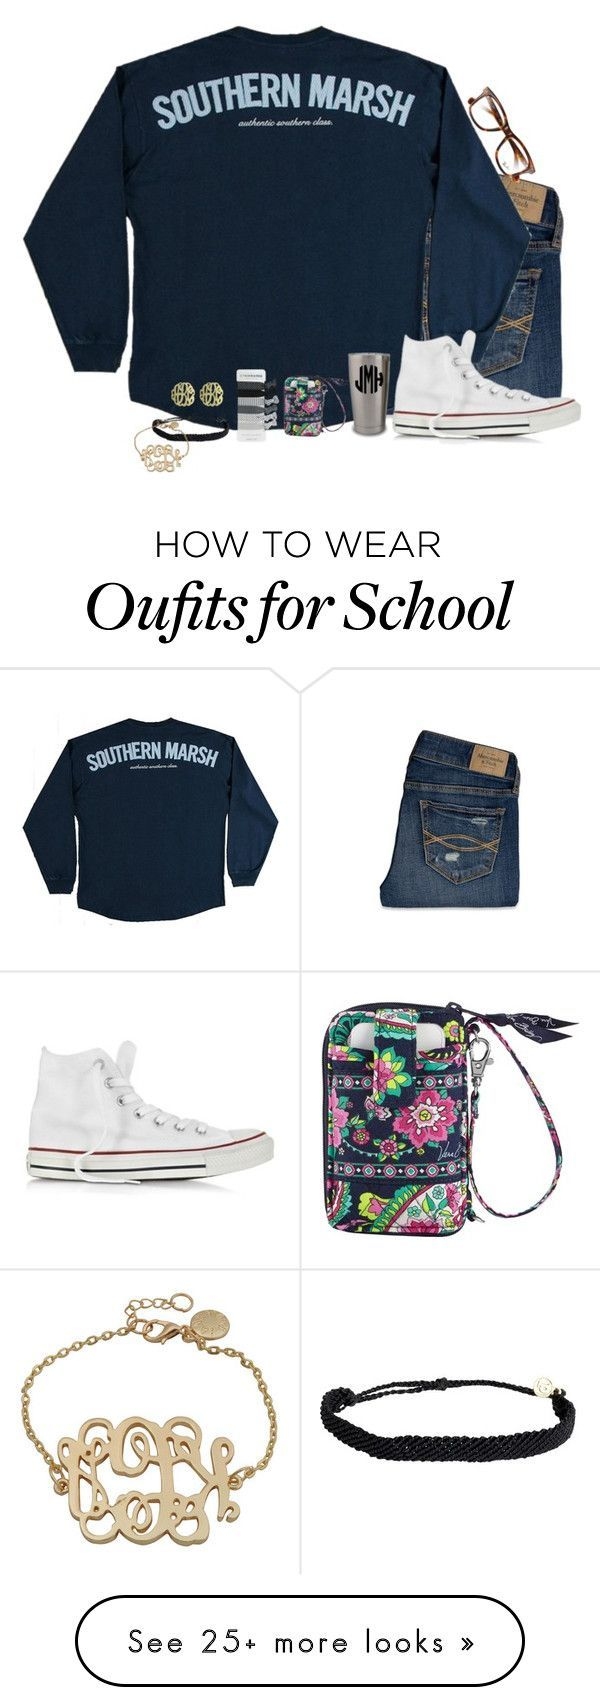 """""""Last Day of exams and school """" by remiii13 on Polyvore featuring Abercrombie & Fitch, Converse, Ray-Ban, Vera Bradley, Pura Vida and Initial Reaction"""